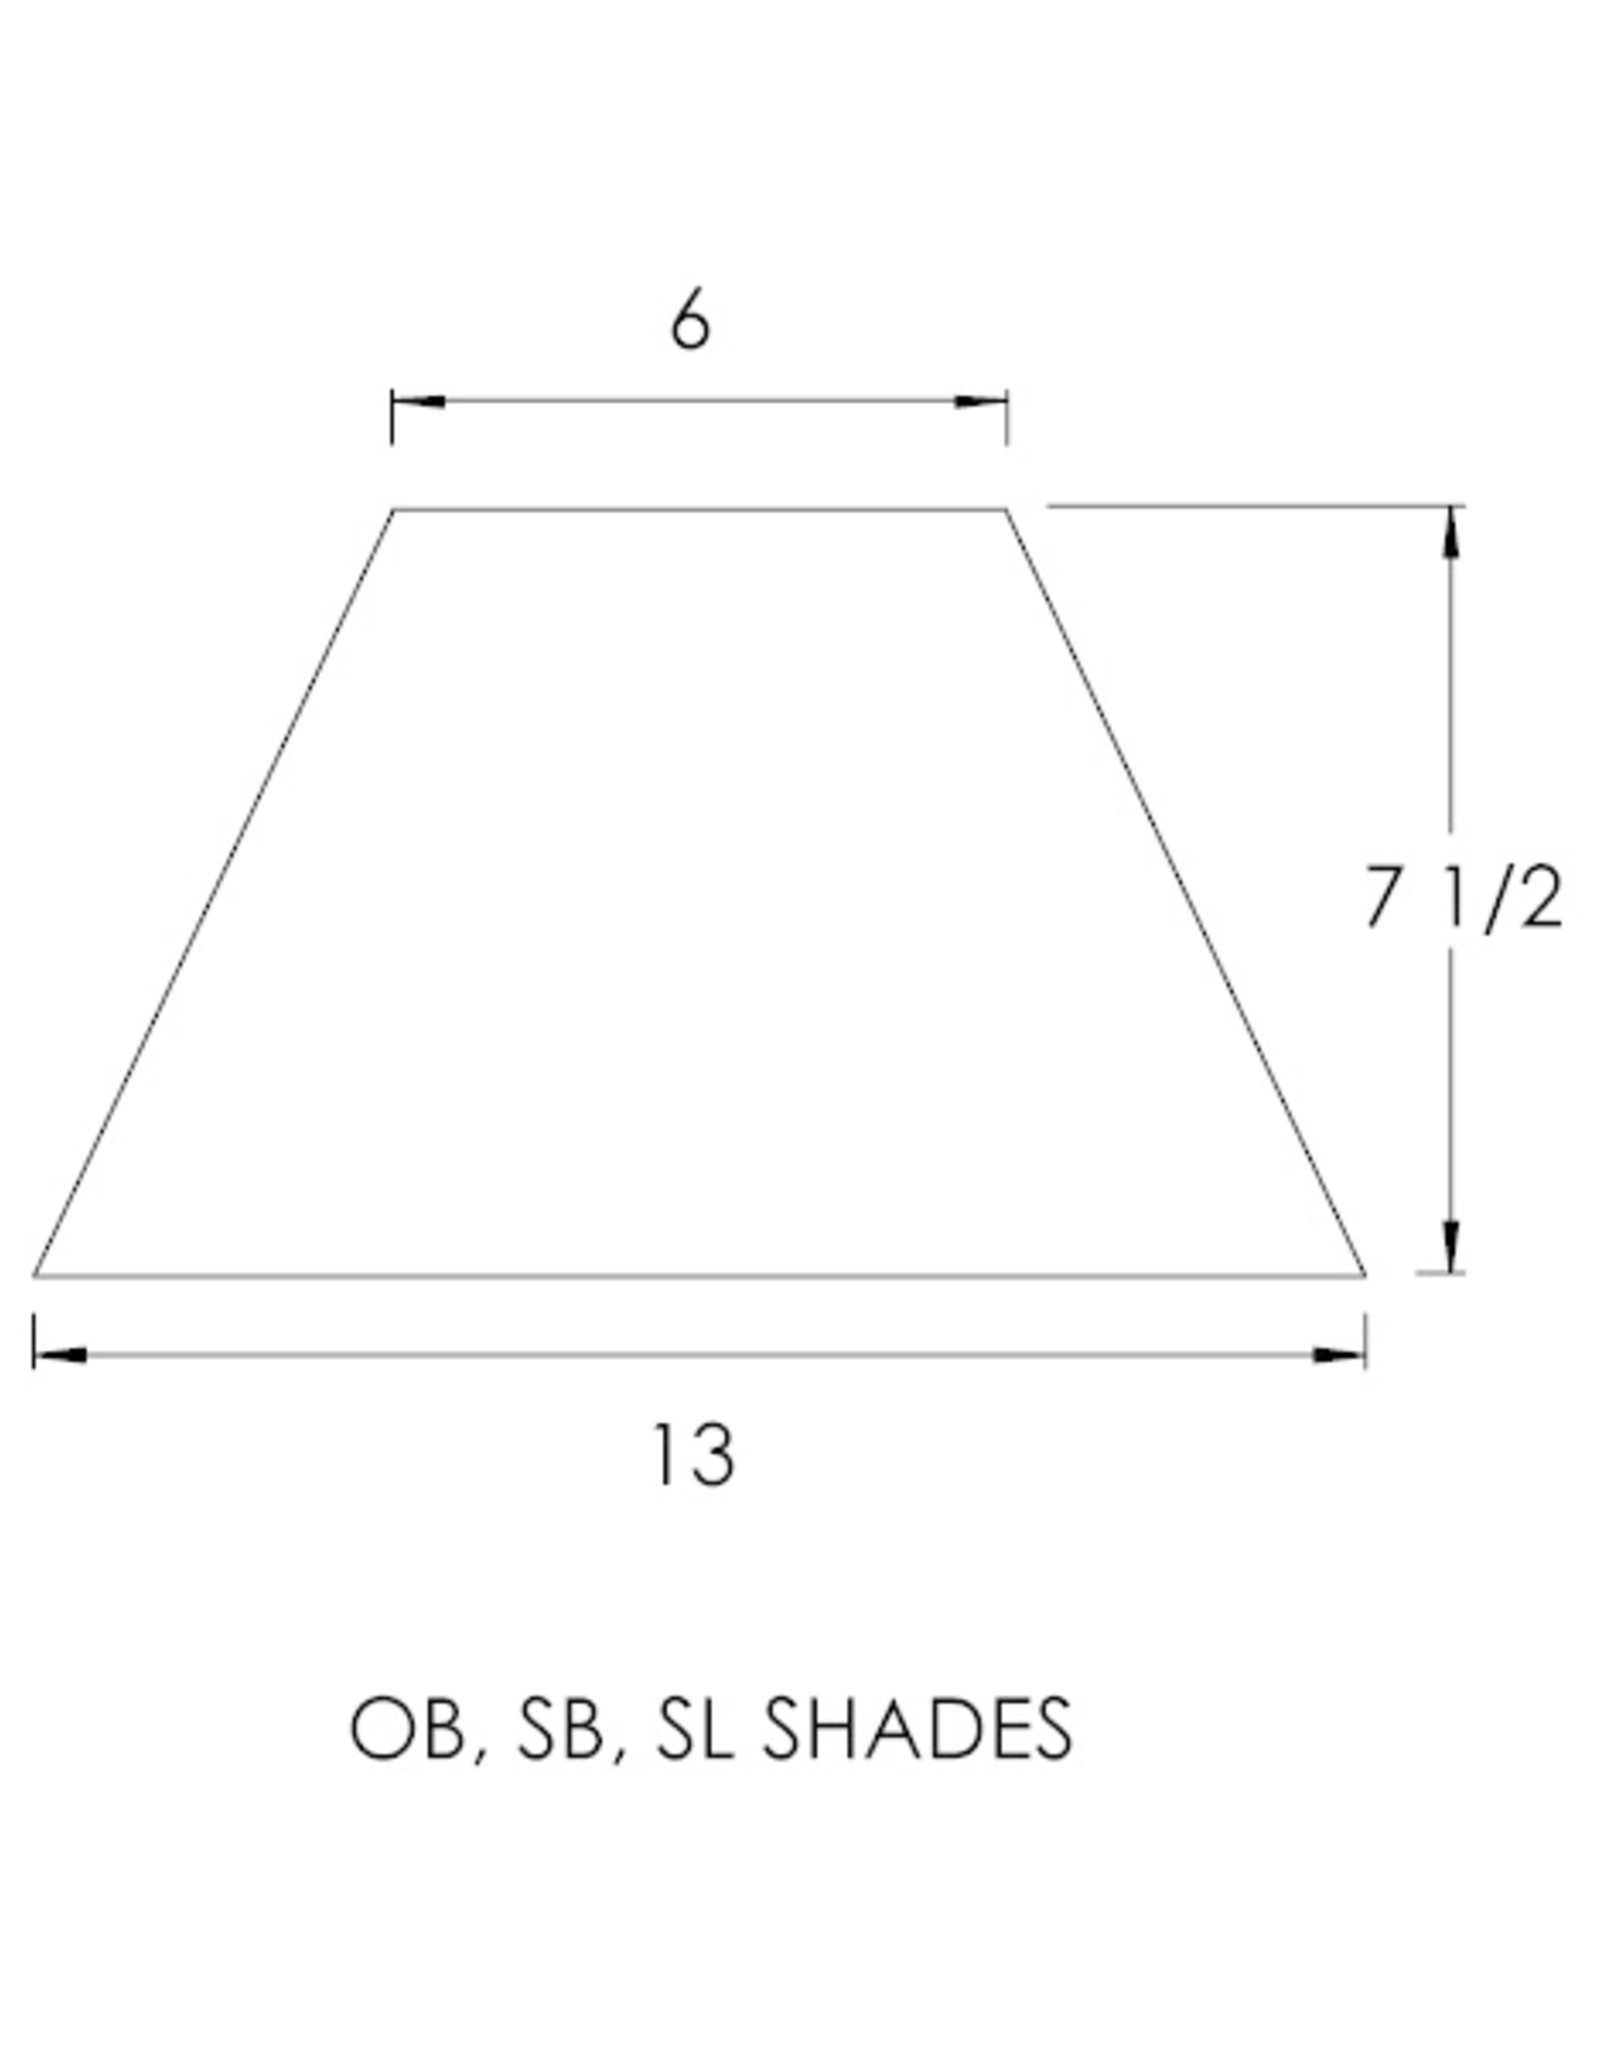 Casella Black Replacement OB Shade - Spider